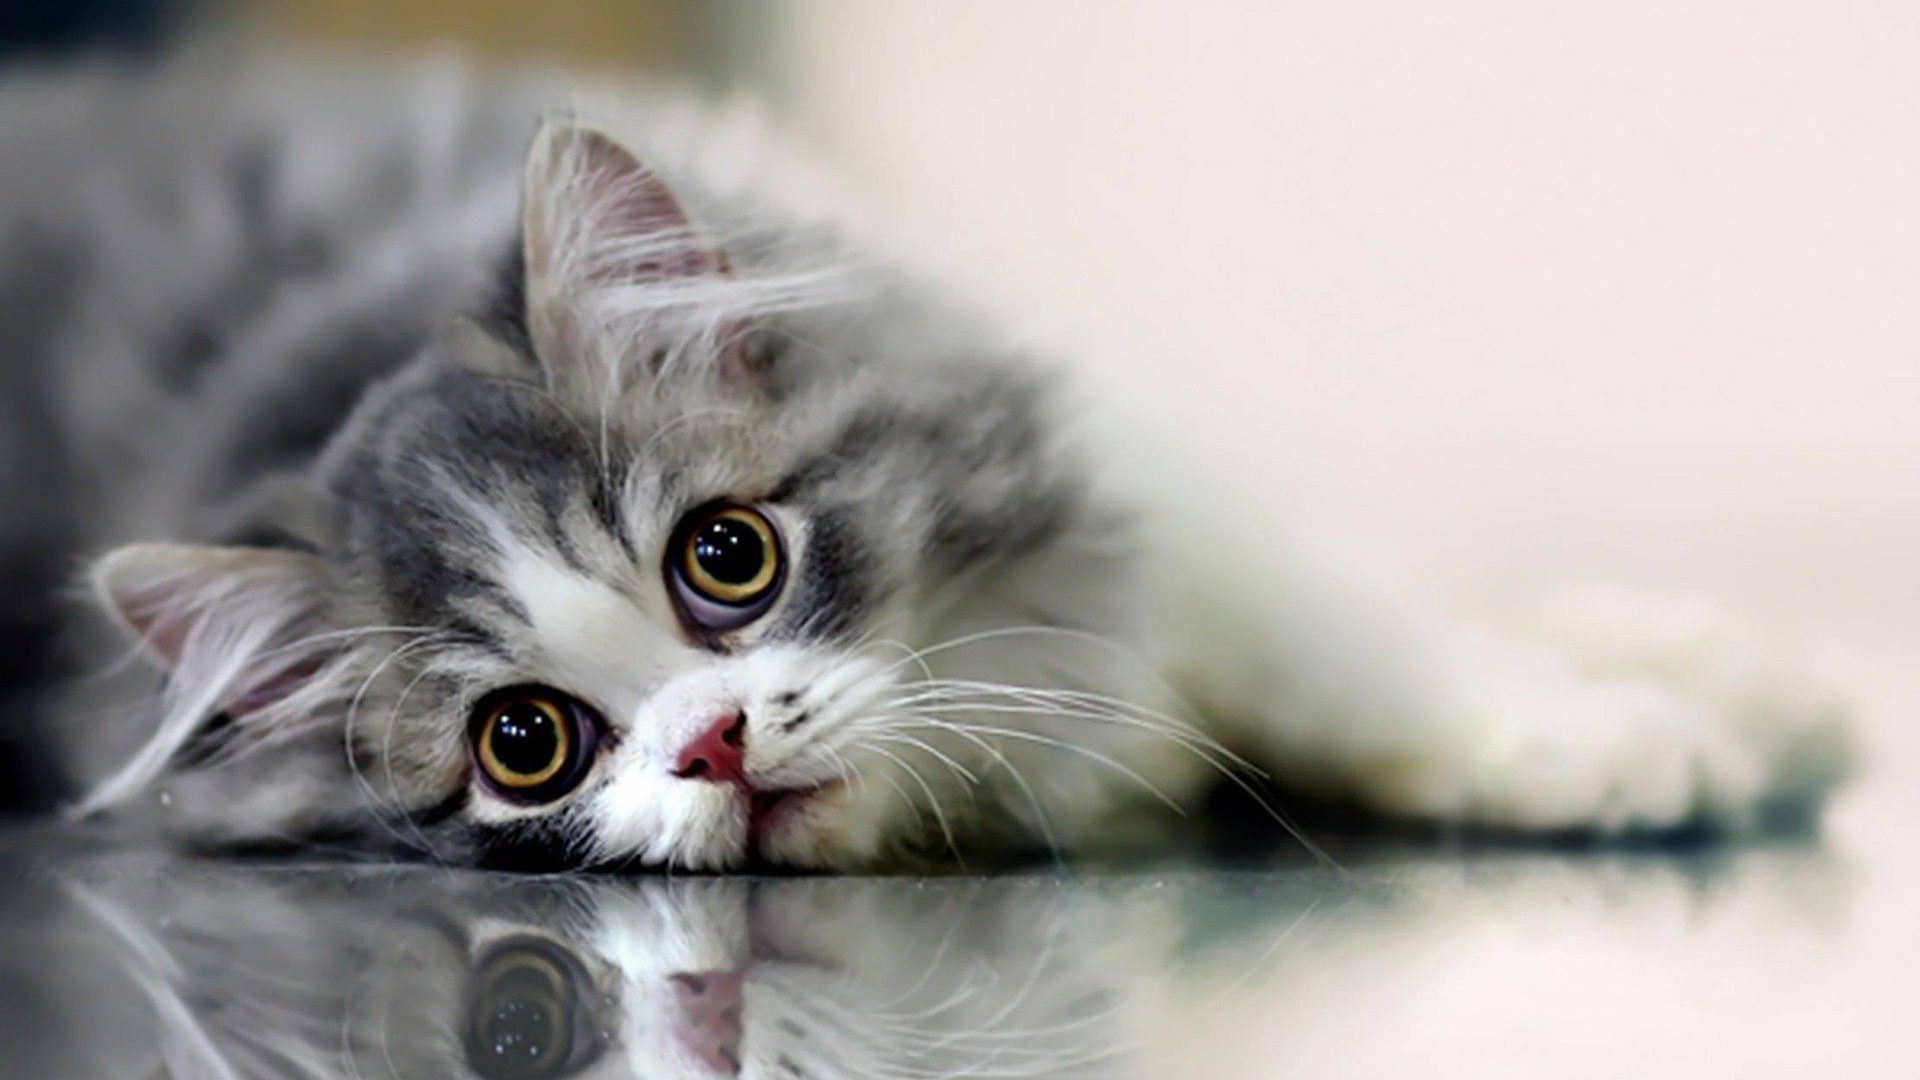 1920x1080 Cute Cat Wallpaper - id:100152705